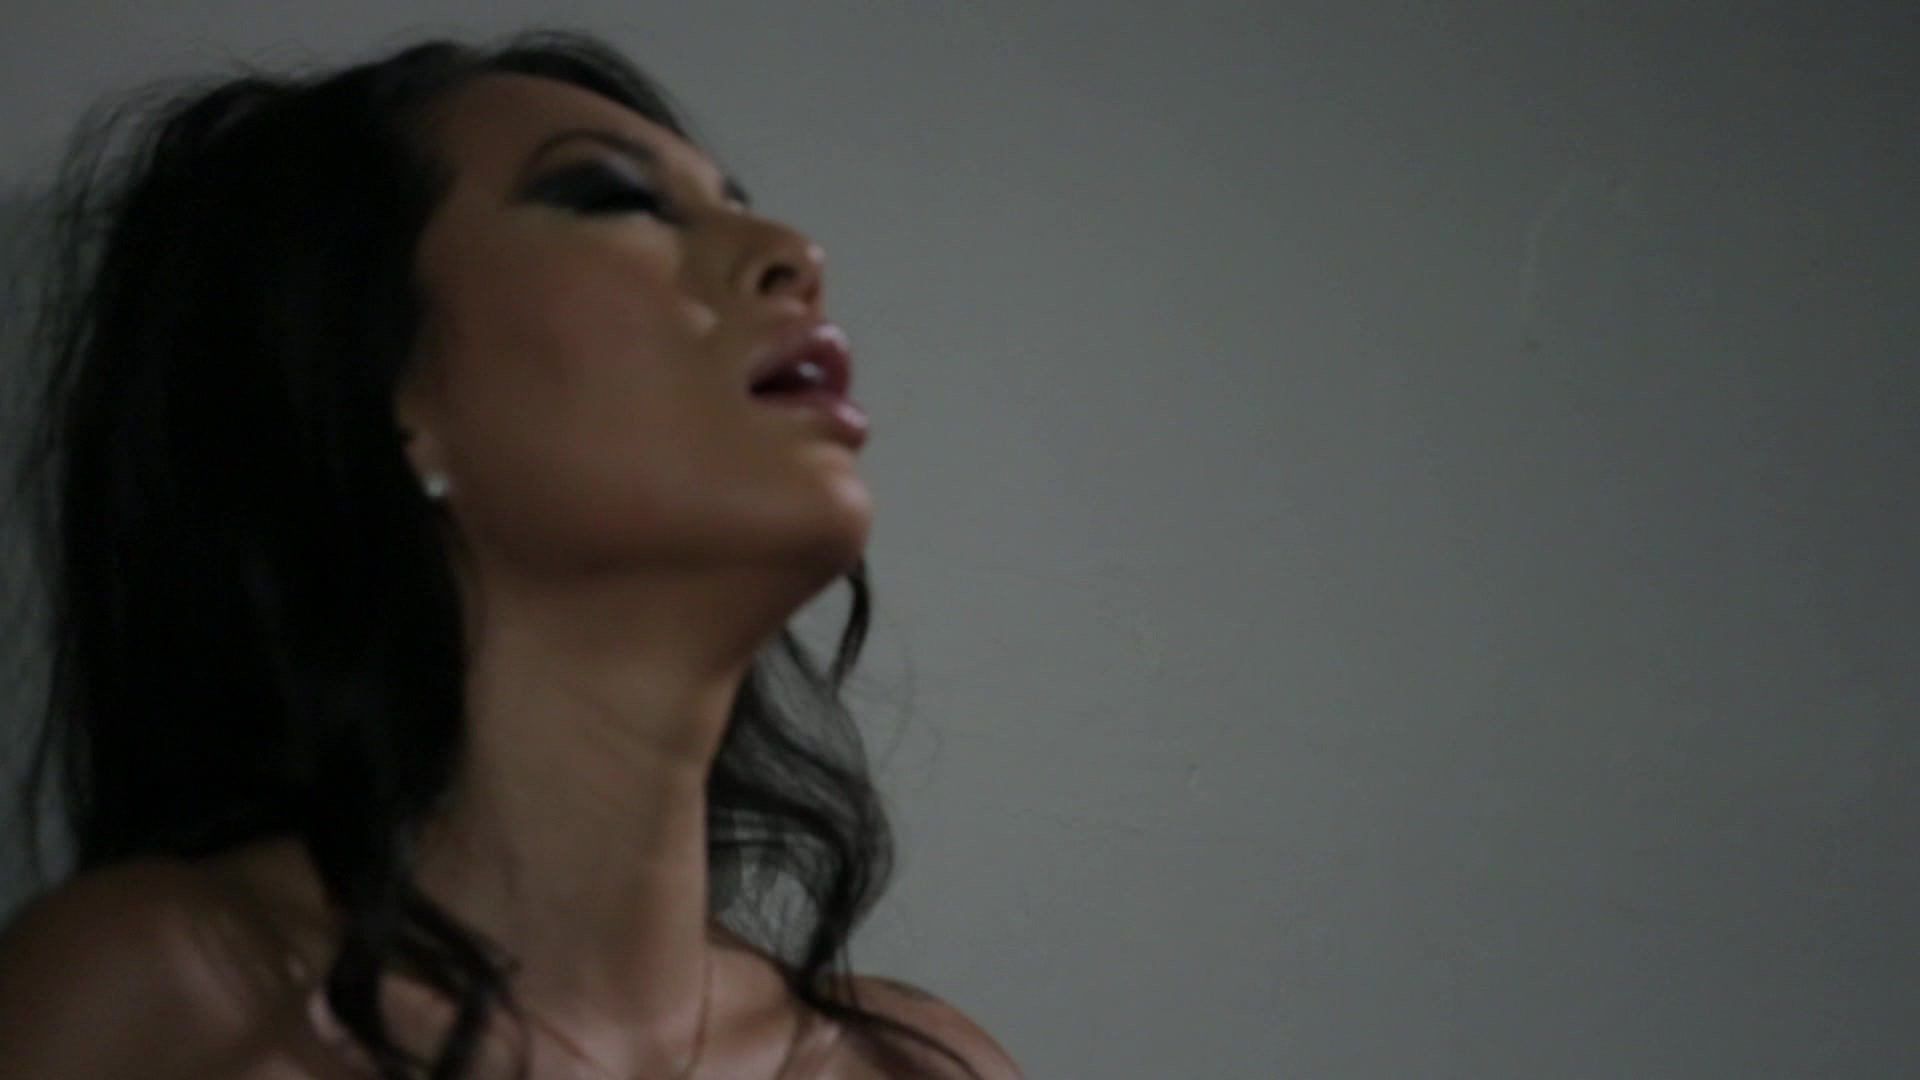 Scene with Asa Akira - image 10 out of 19